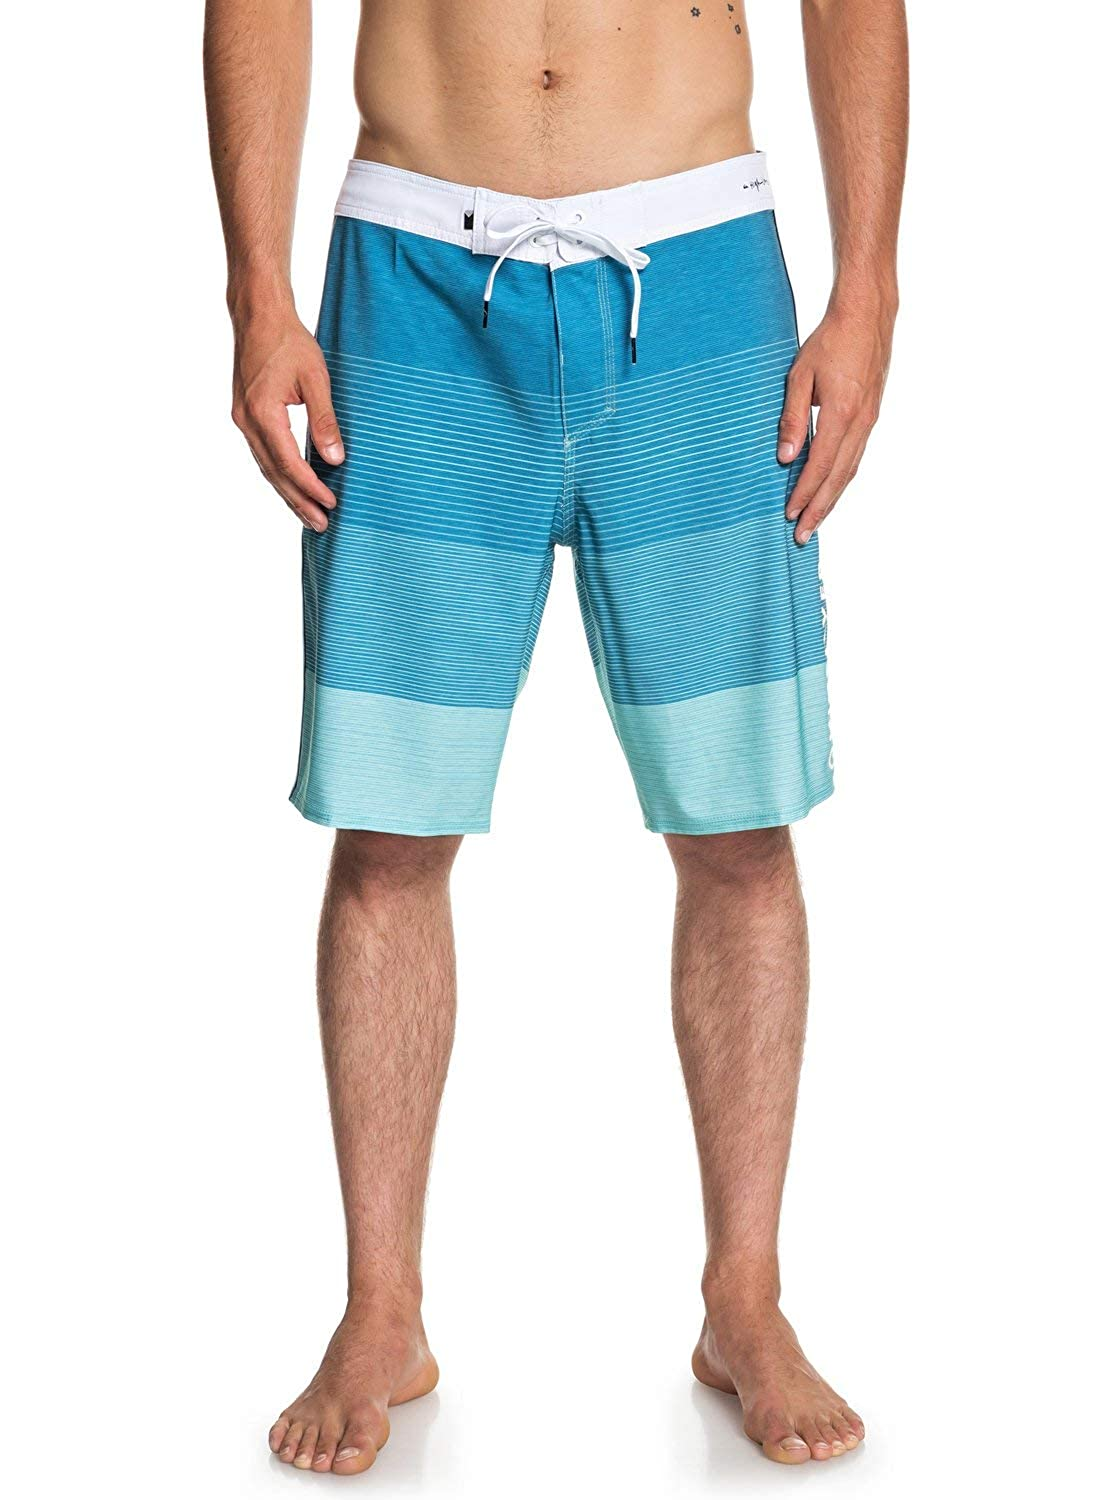 Quiksilver Mens Highline Massive 20 Boardshort Swim Trunk